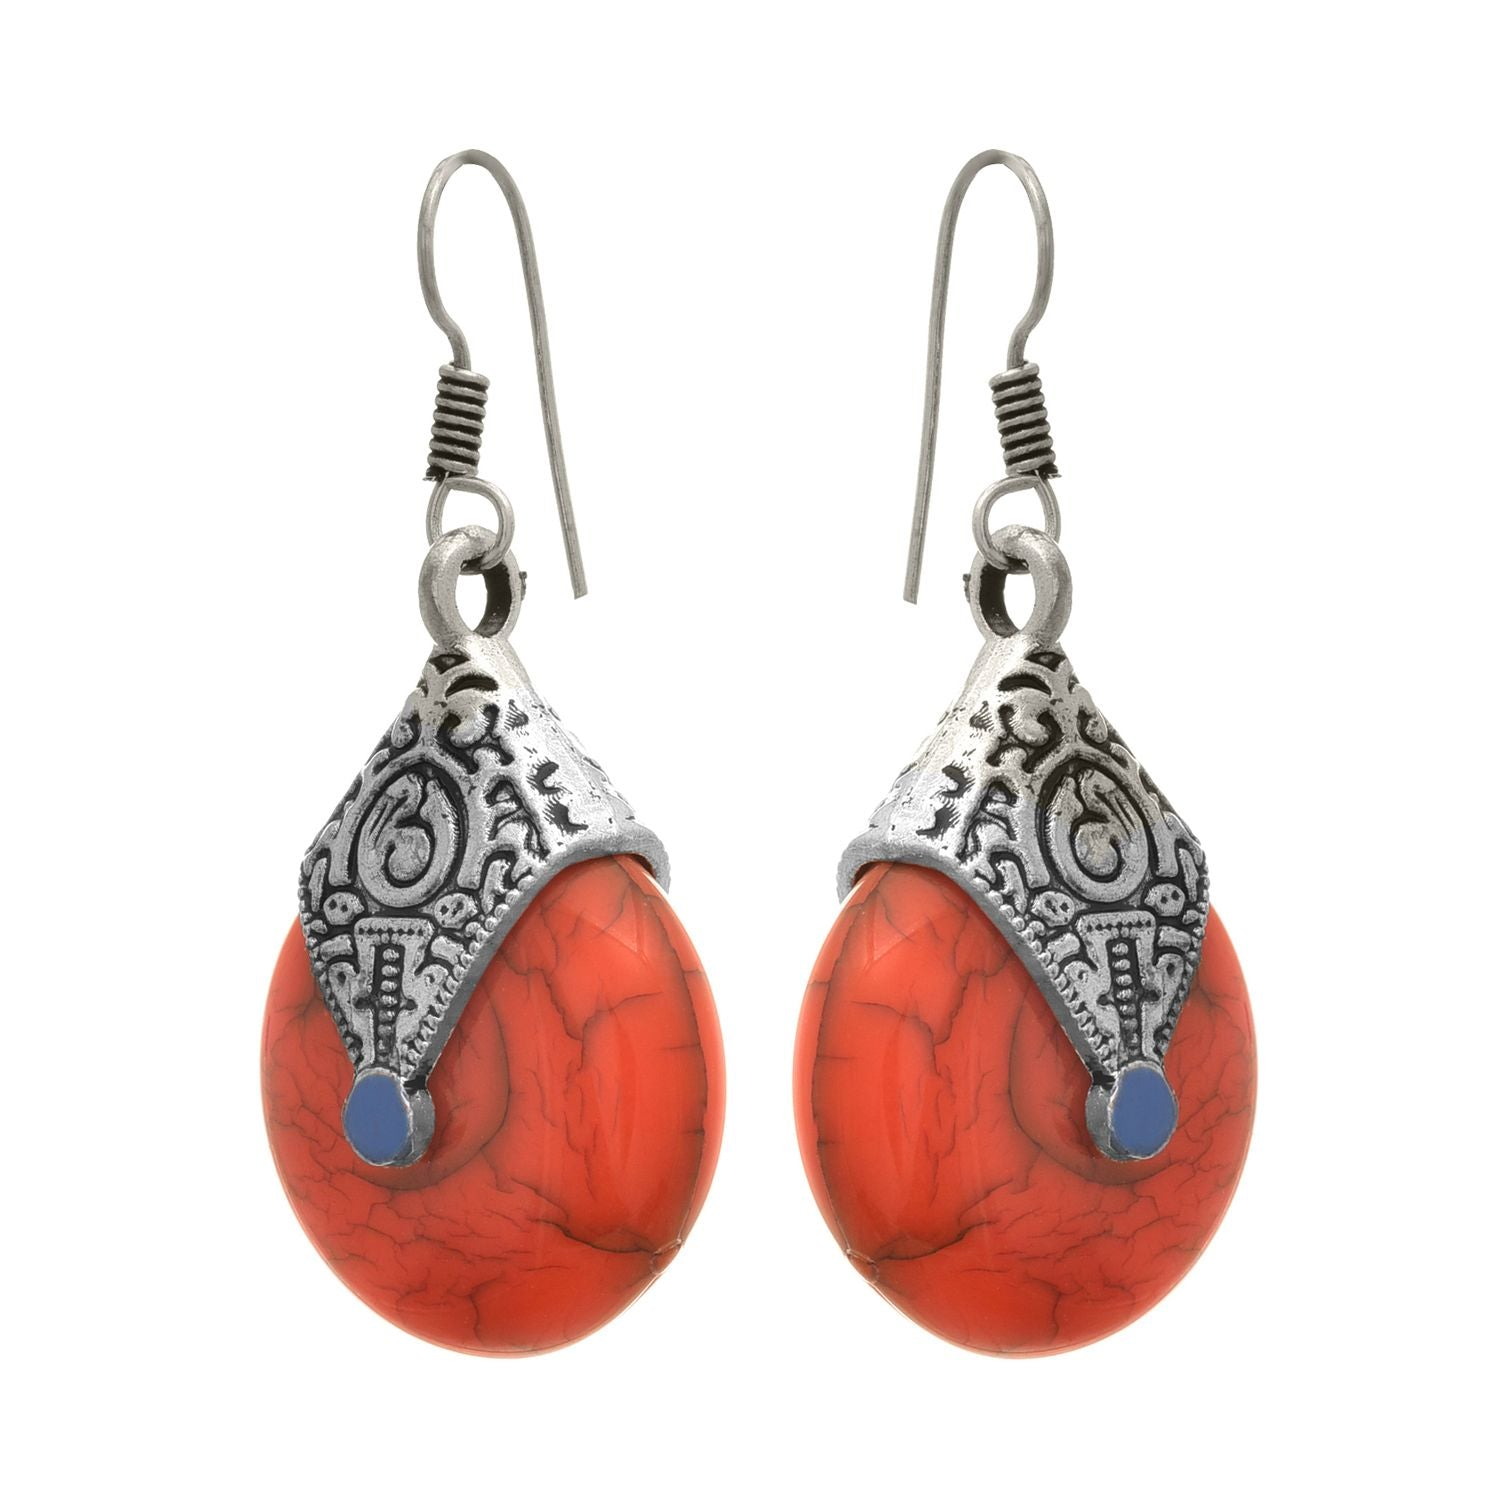 JFL -Traditional Ethnic German Silver Plated Earrings With Faux Semi Precious Brown Stone For Women & Girls.